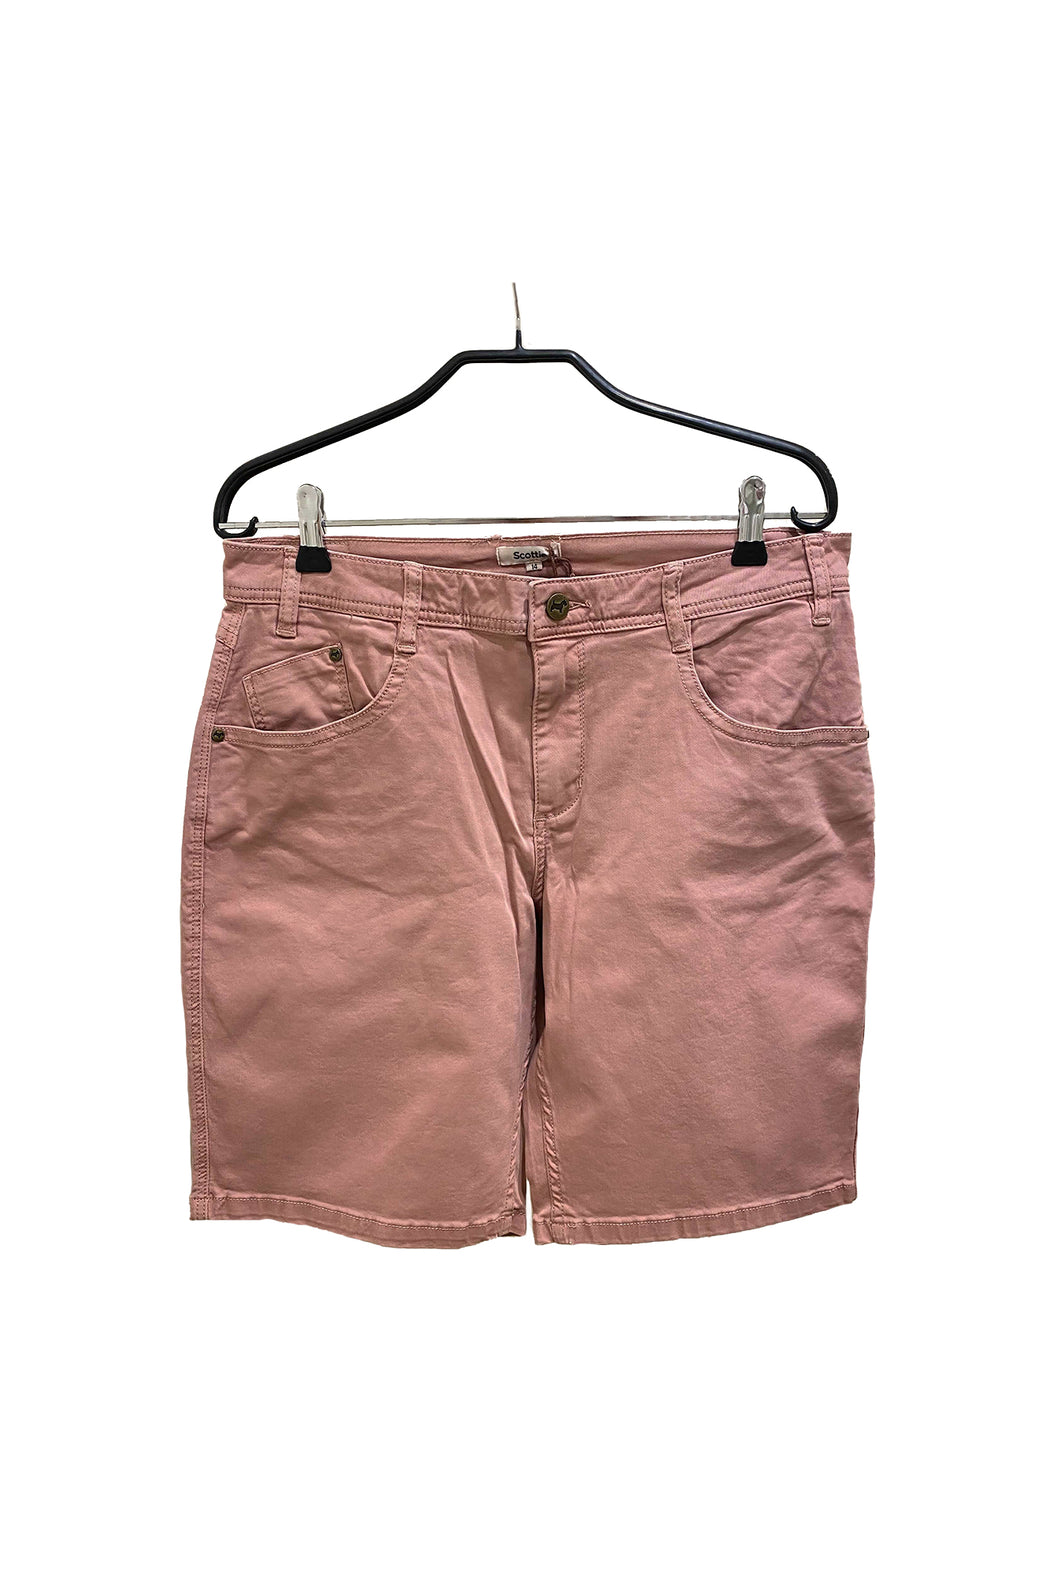 Scottie Shorts - Blush | Shop Scottie Clothing at Wallace and Gibbs NZ